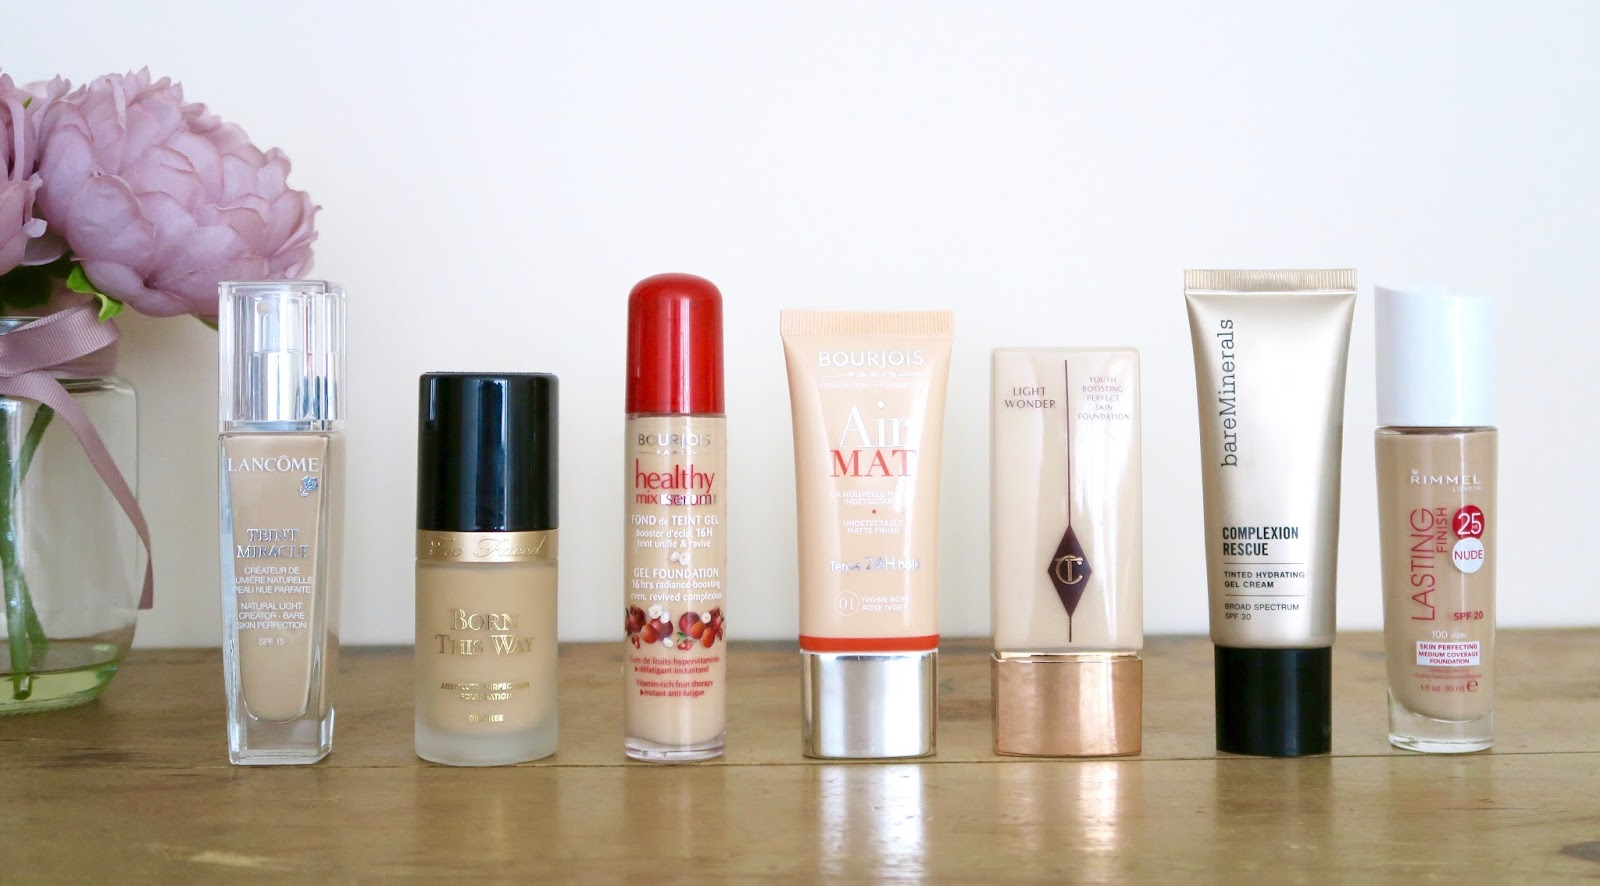 My 7 holy grail foundations